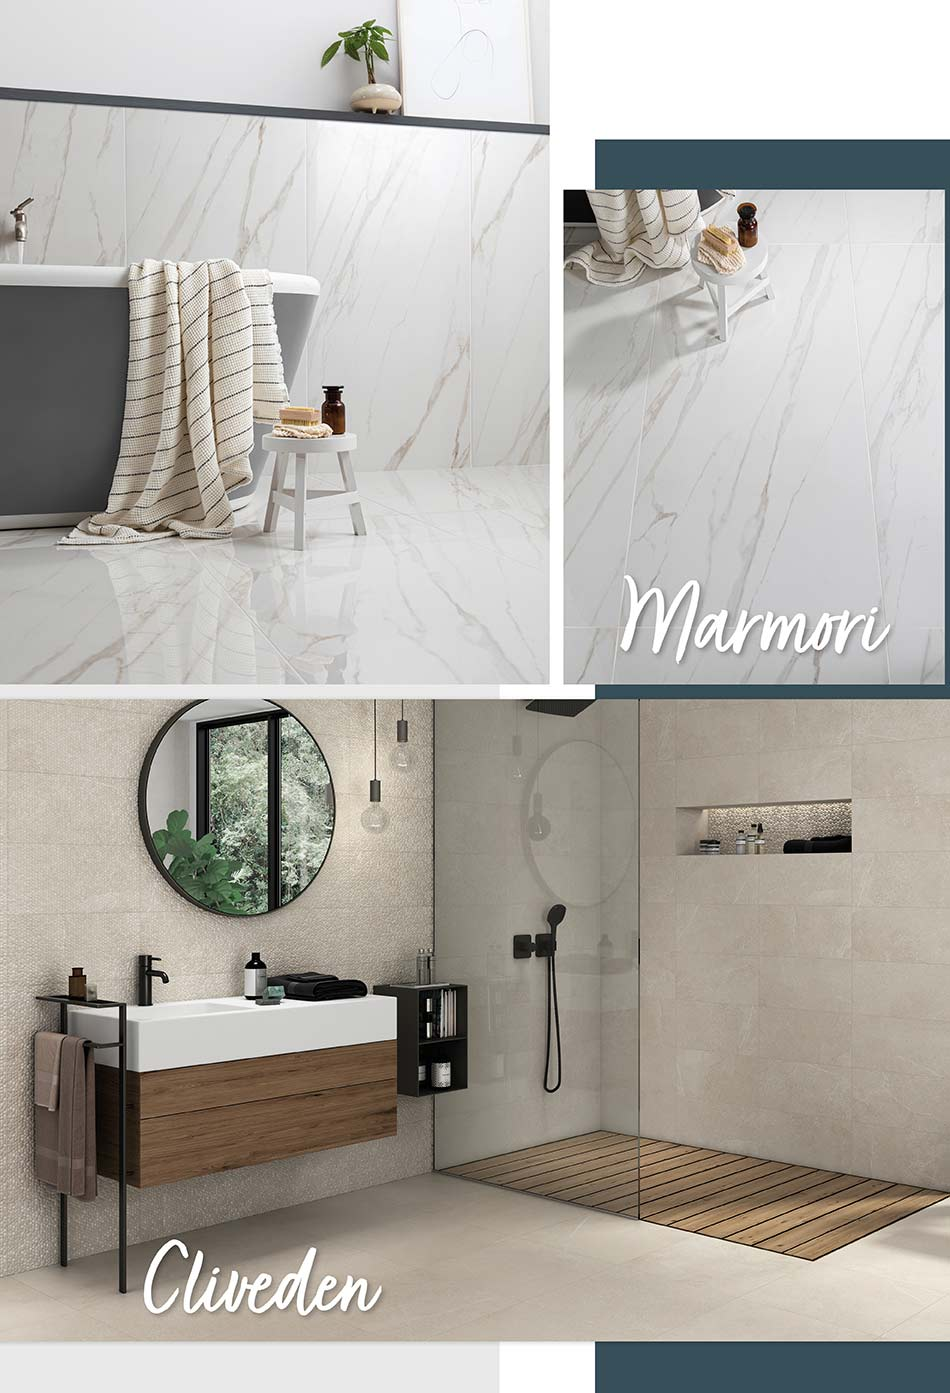 Marmori & Cliveden wall and floor tile collection